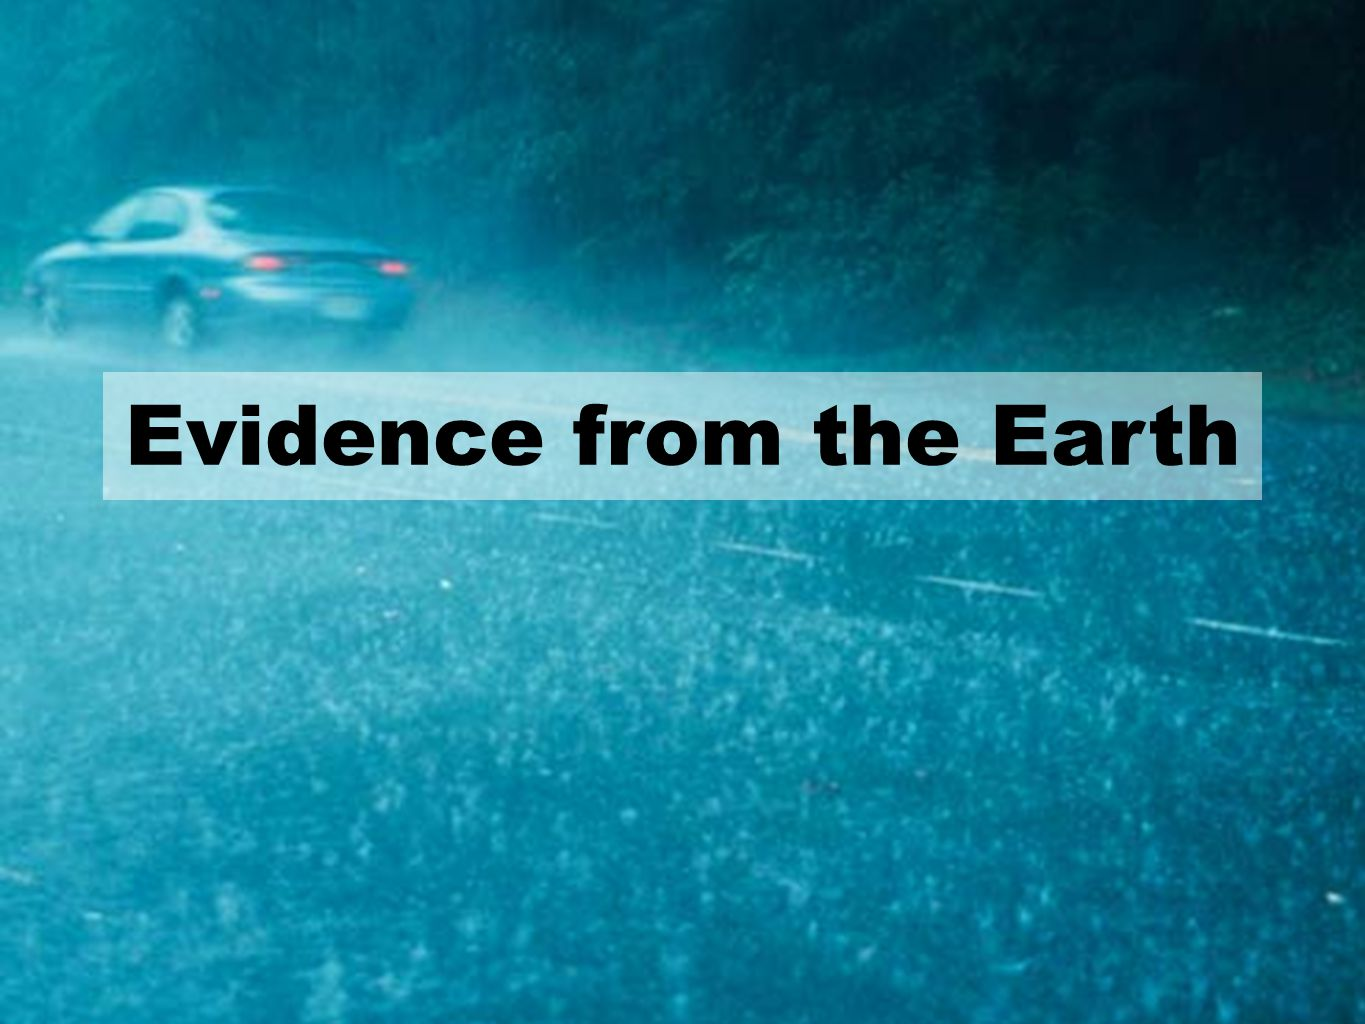 Evidence from the Earth